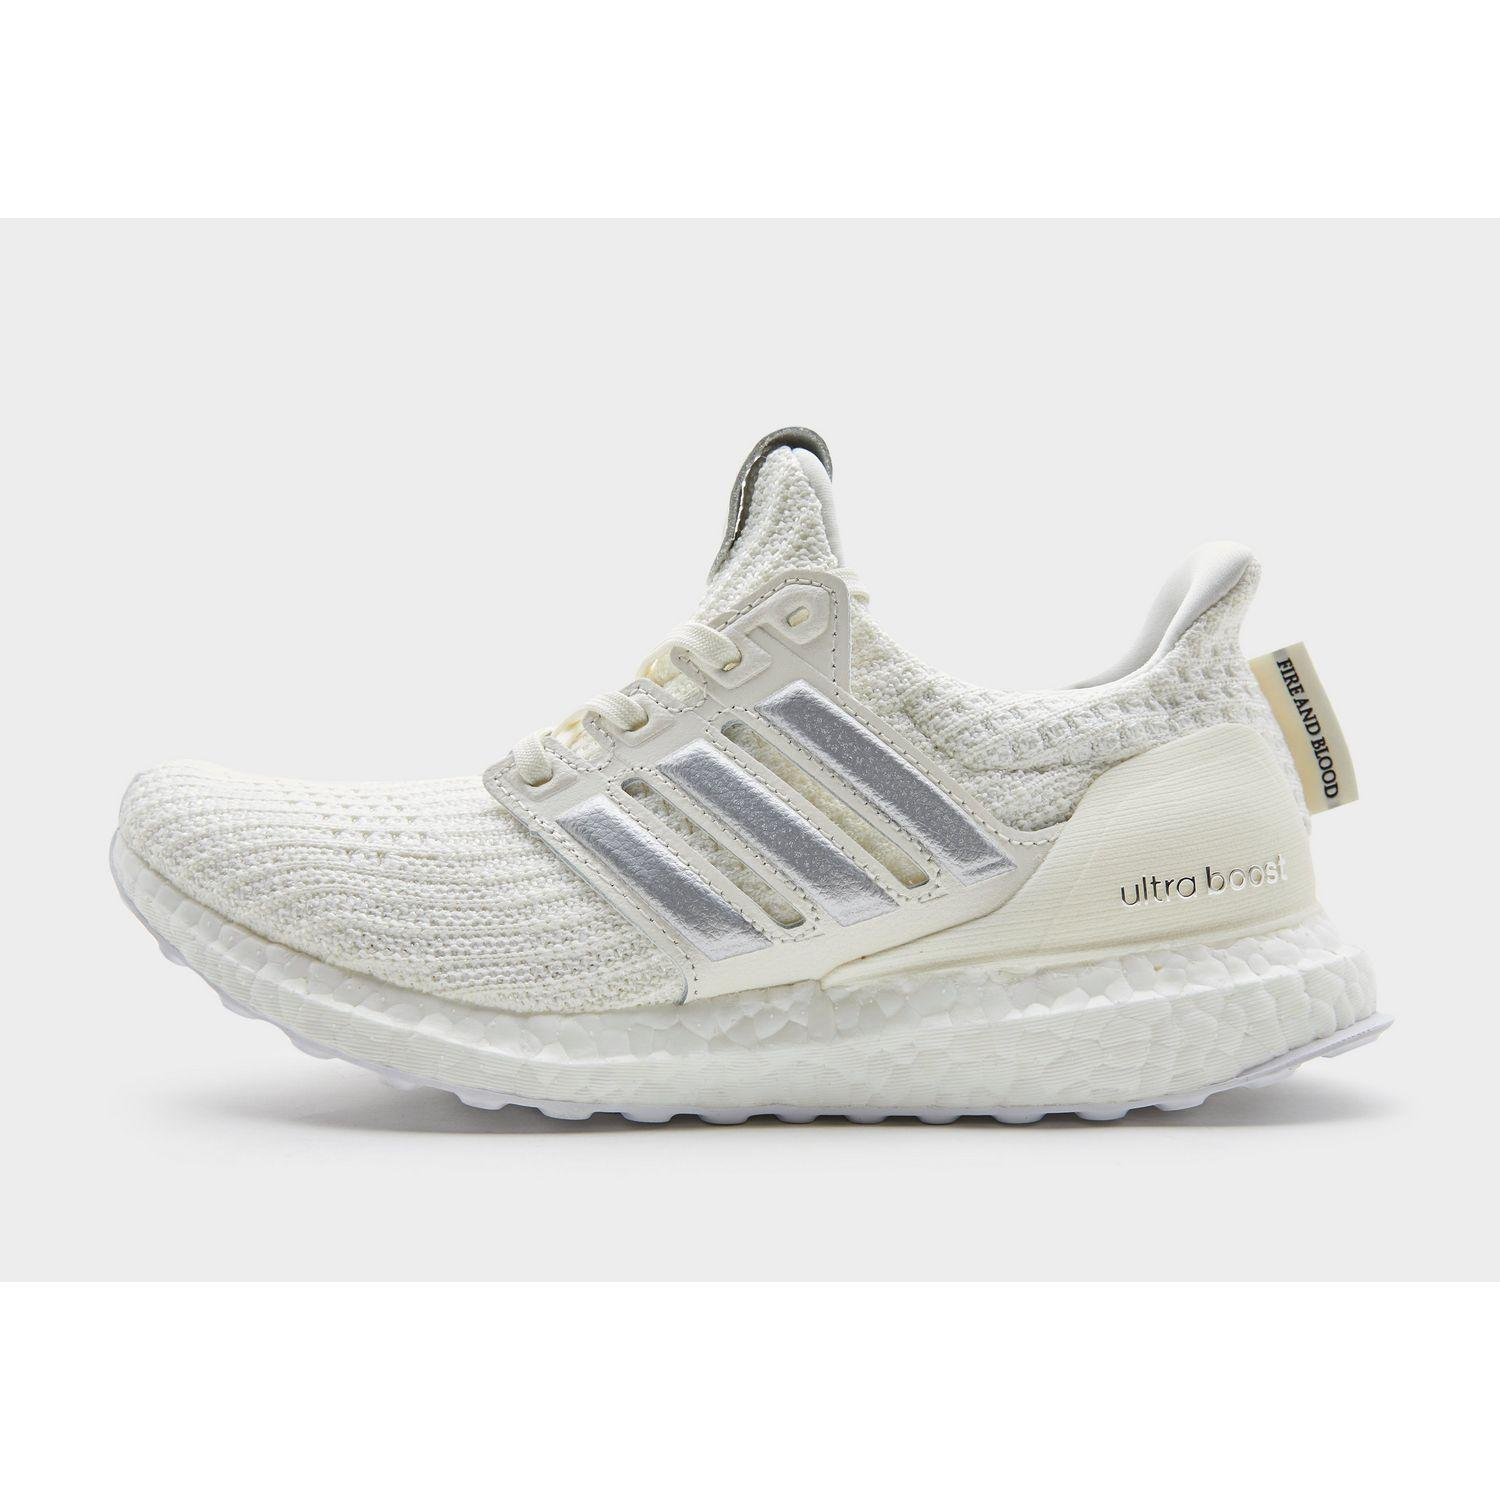 e6608785a Adidas - White Ultraboost X Game Of Thrones Shoes for Men - Lyst. View  fullscreen